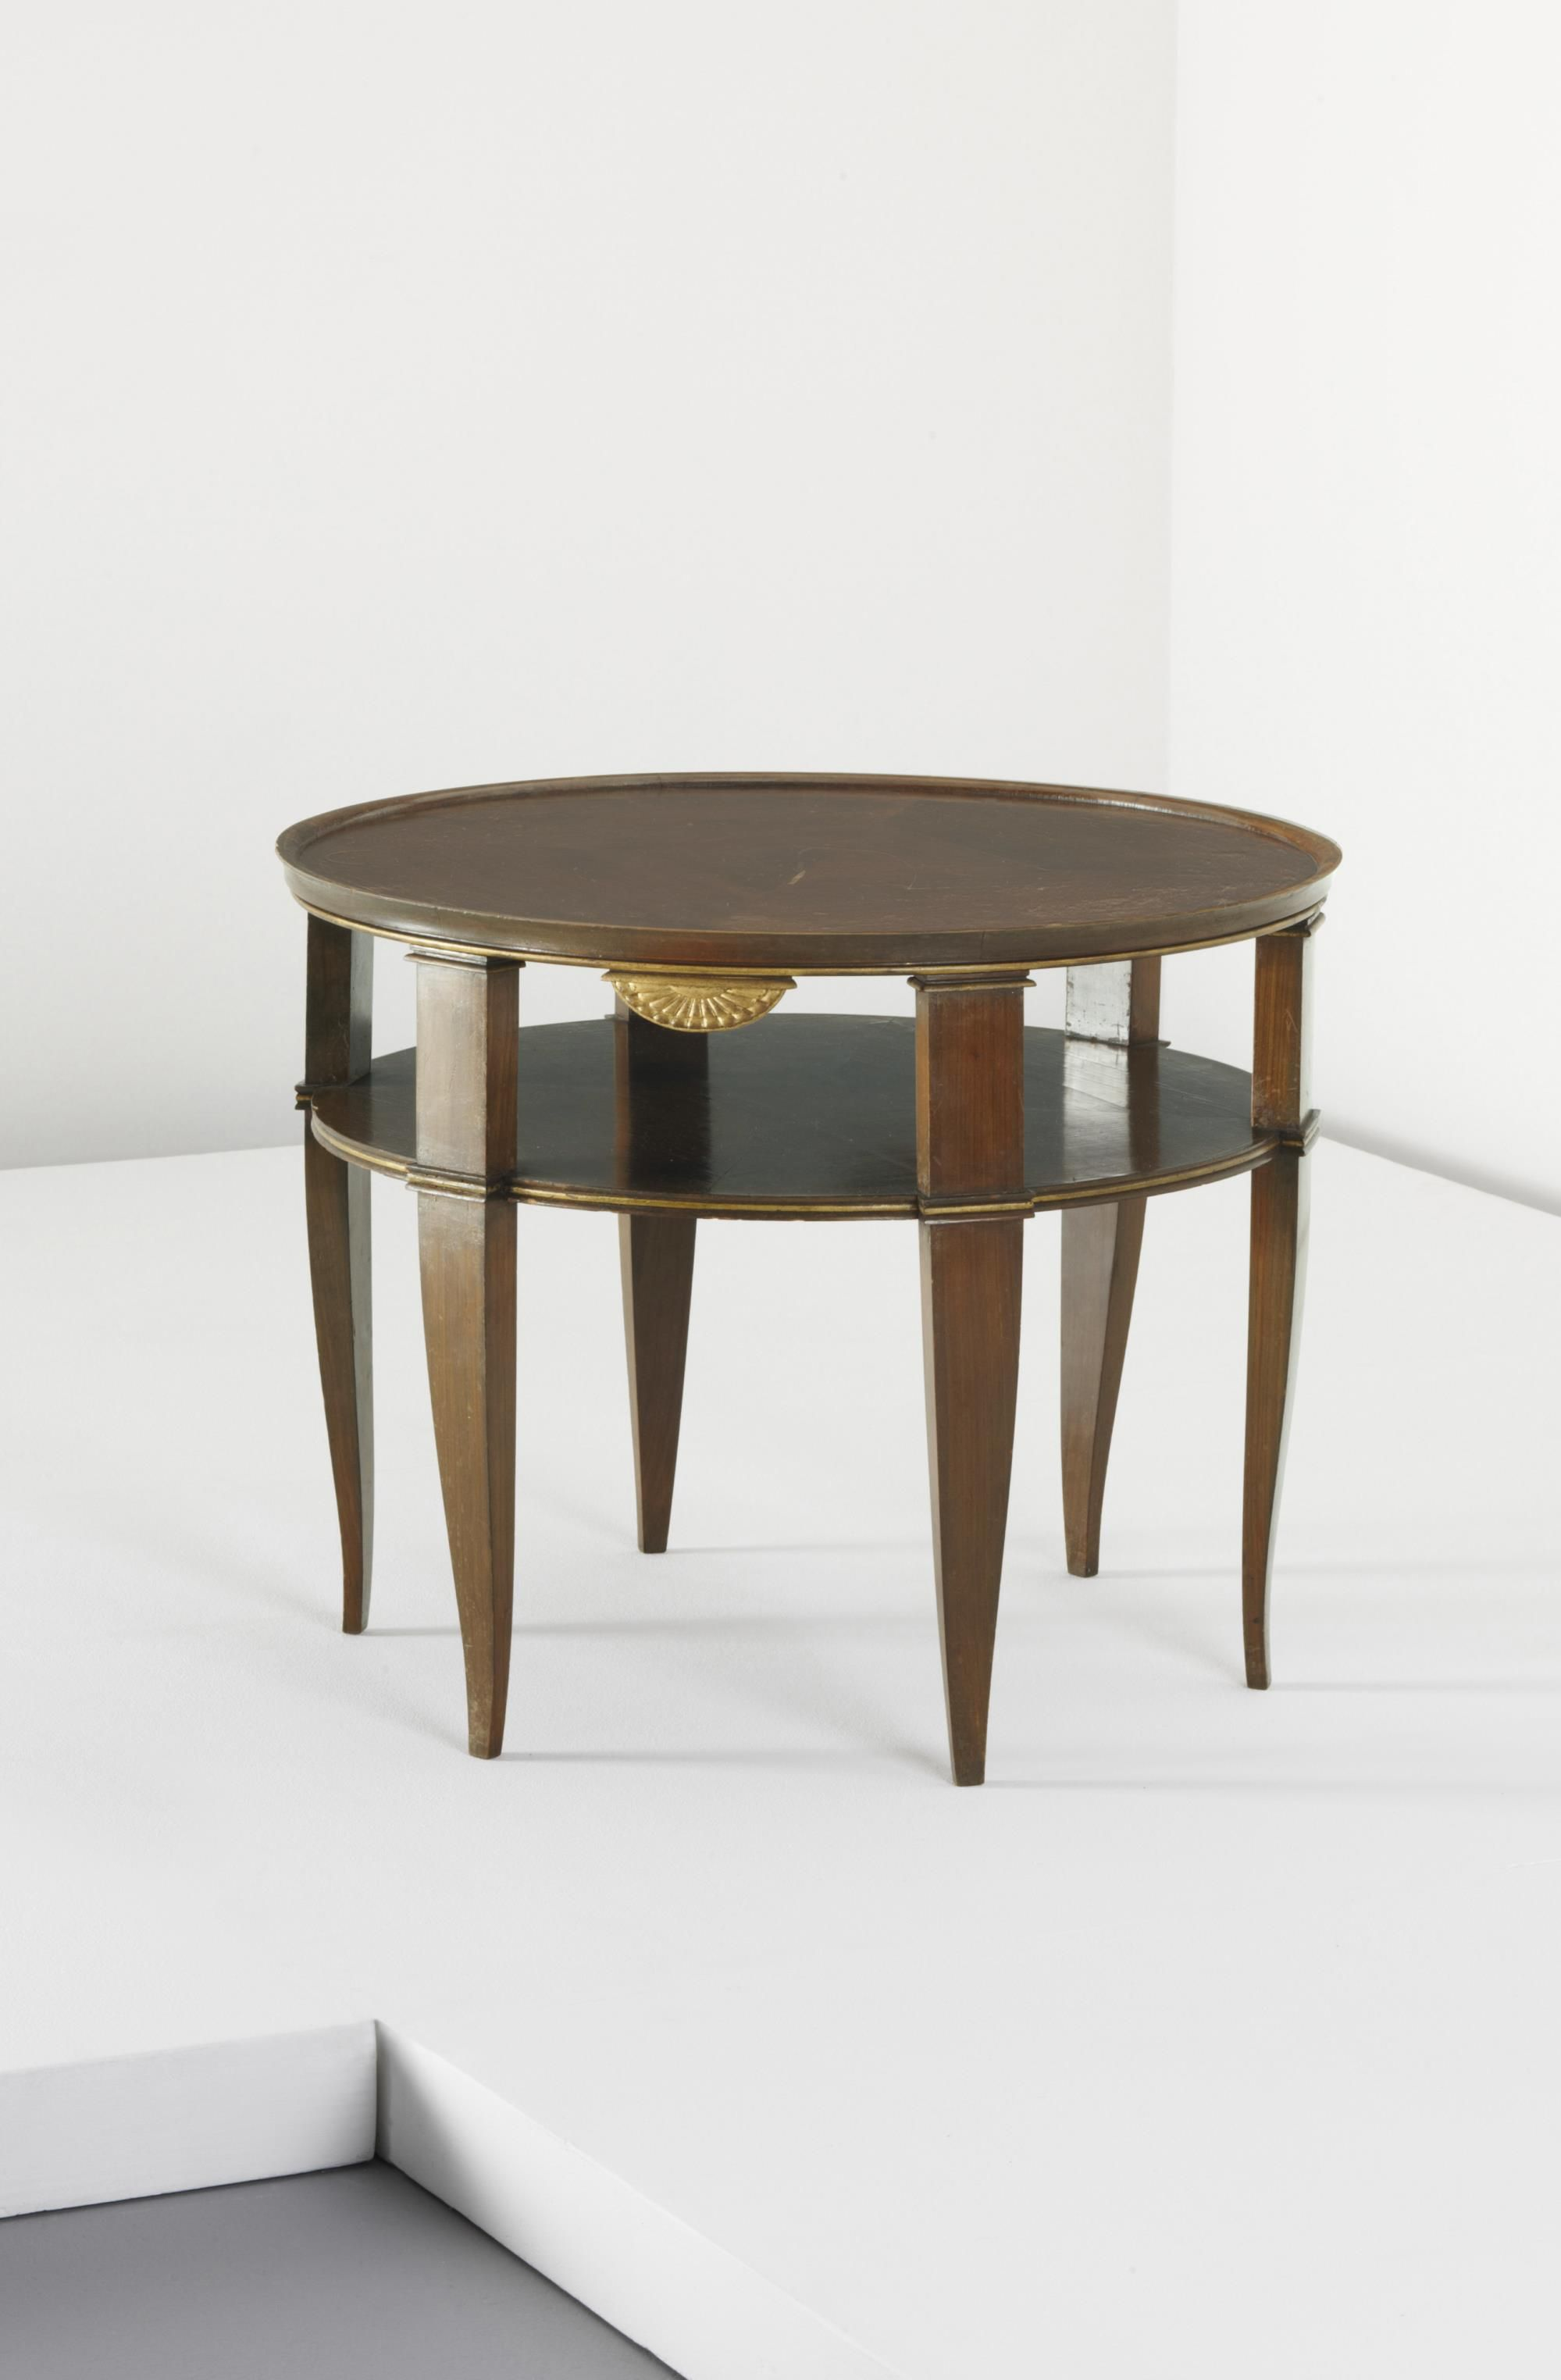 GIO PONTI Occasional table c 1930 Walnut veneered wood walnut